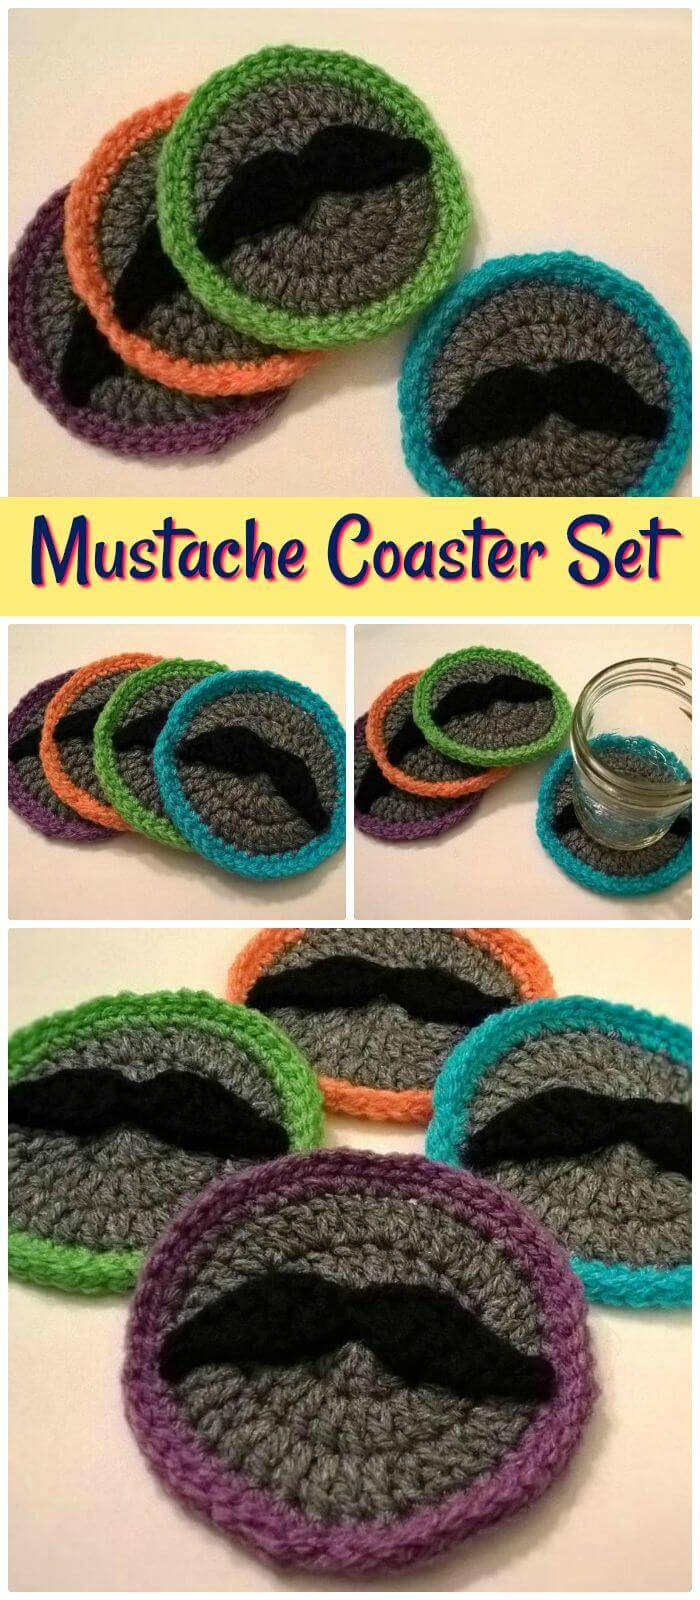 70 easy free crochet coaster patterns for beginners page 6 of 14 diy mustache coaster set free crochet pattern quick and easy crochet coasters with complete bankloansurffo Gallery